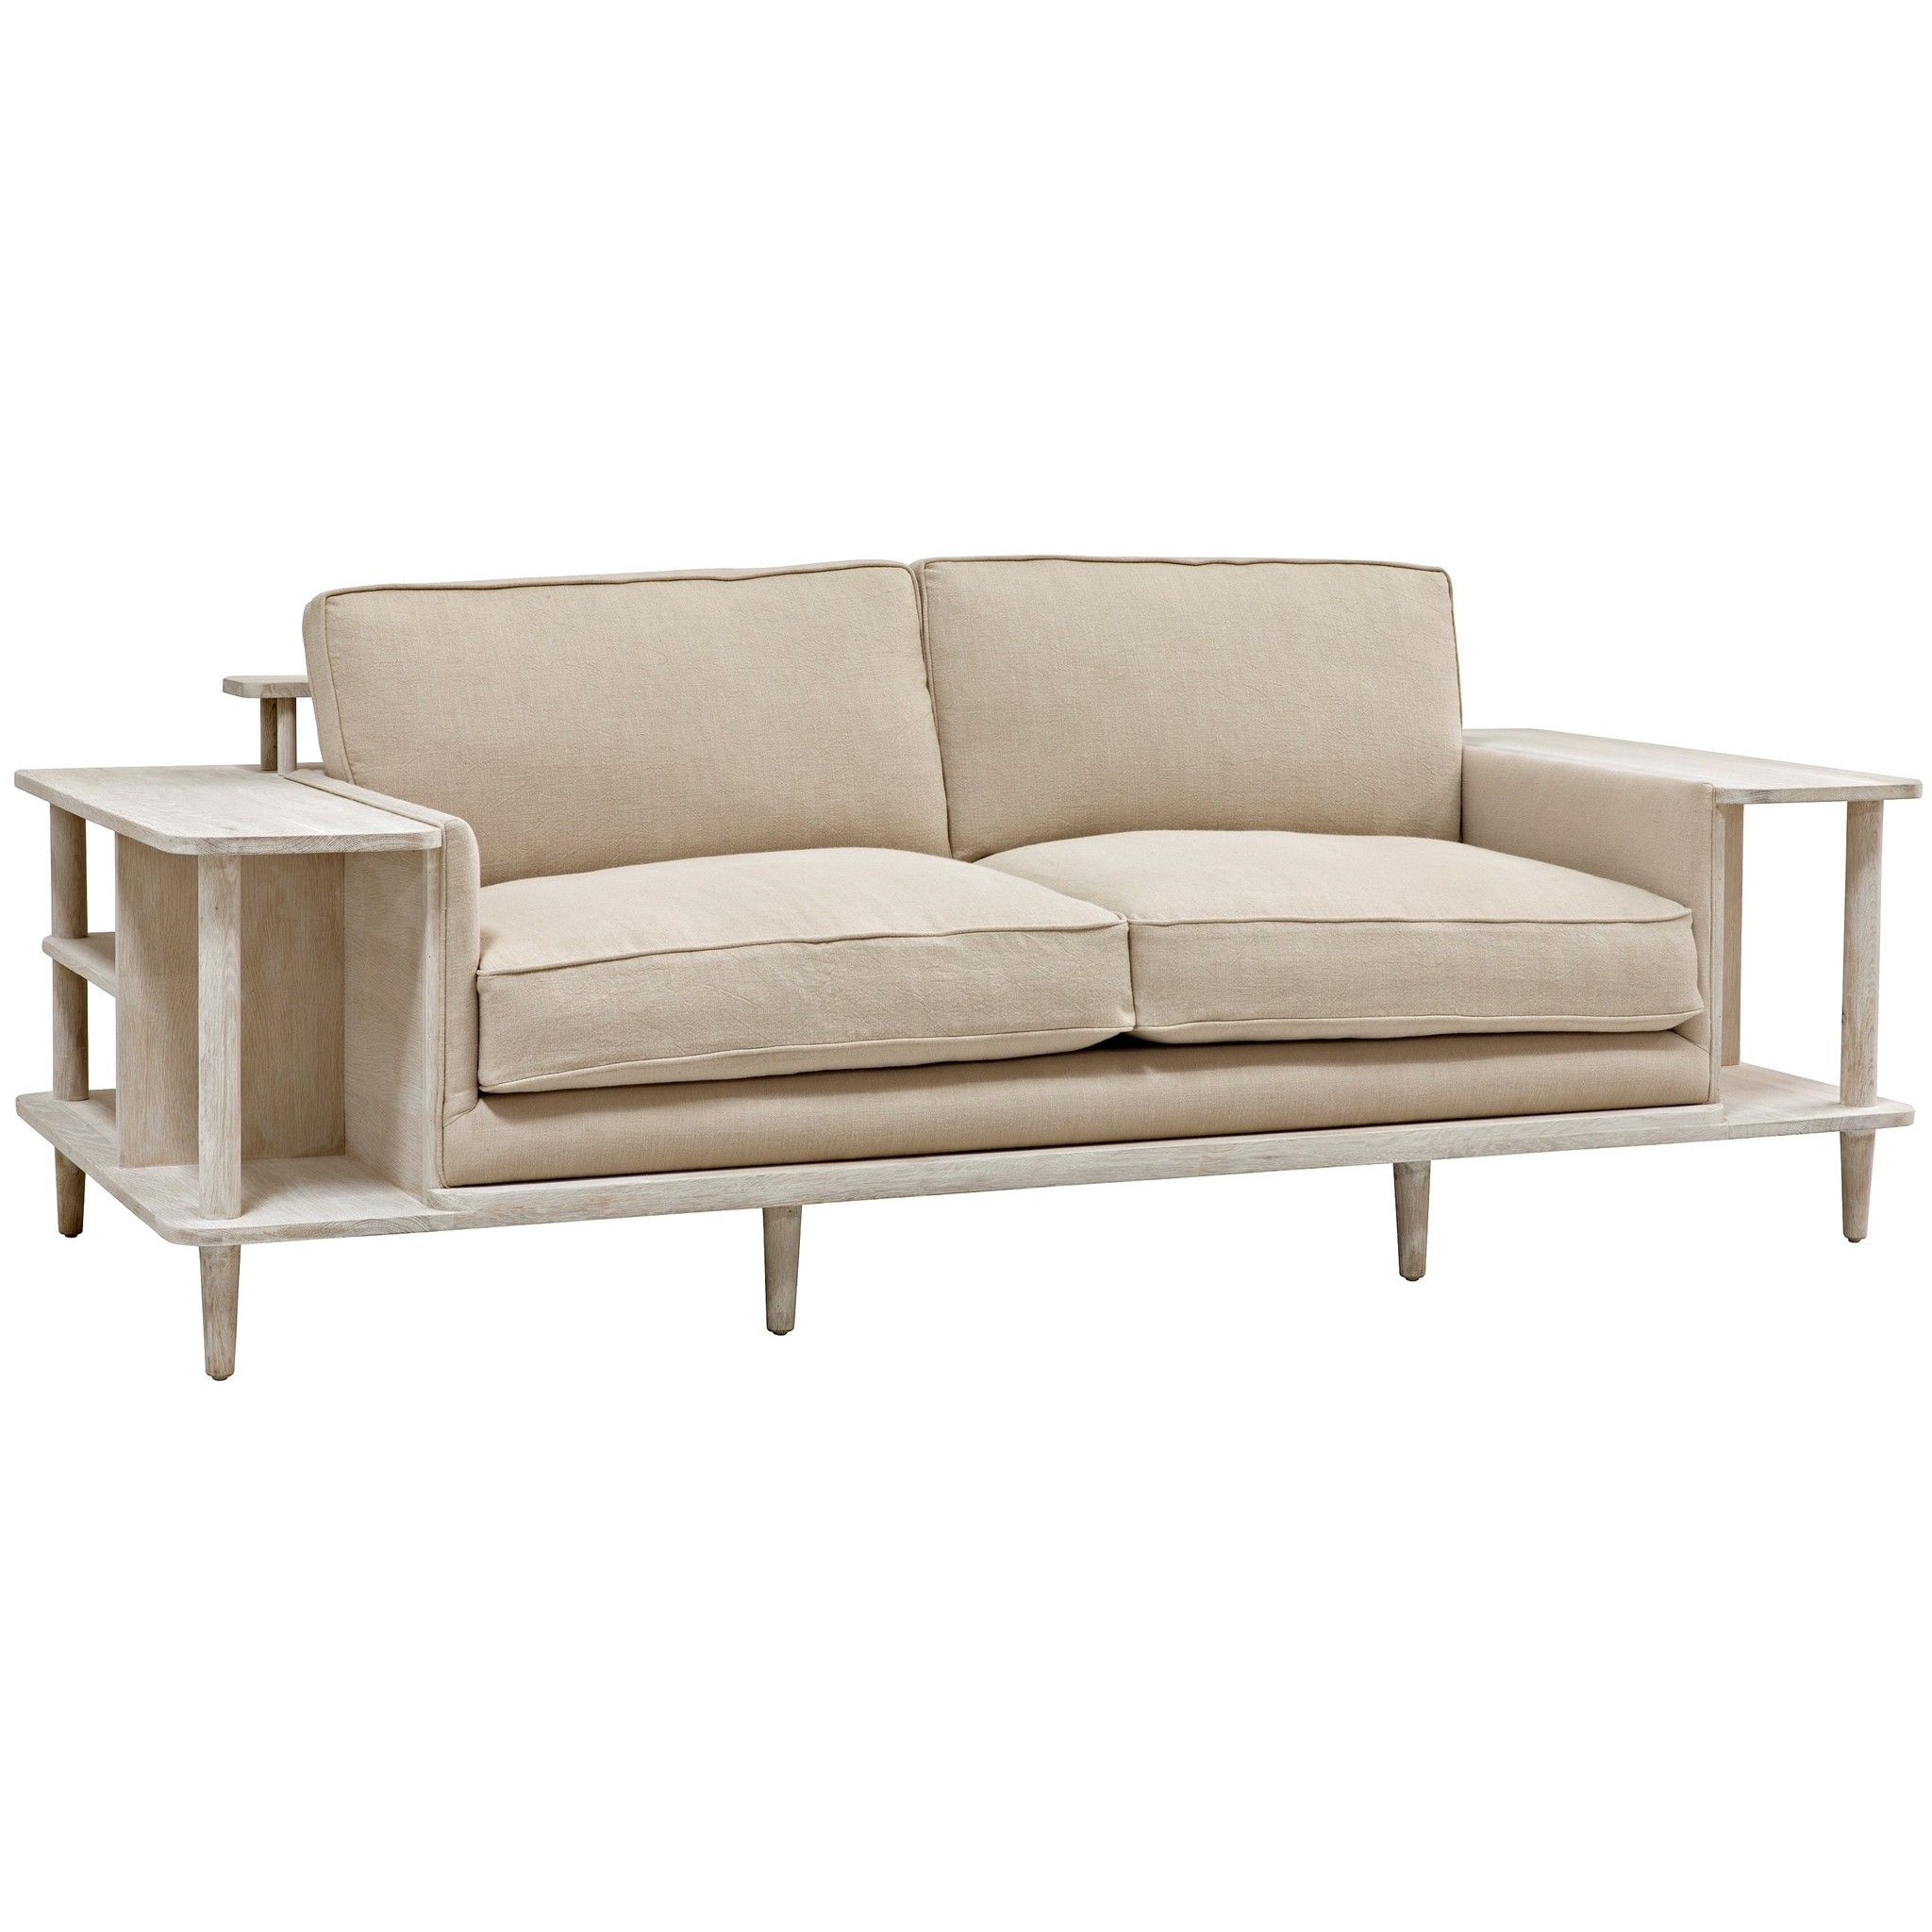 Modern Couch Inside 23 Modern Couches To Buy Online u2014 Best Sofas